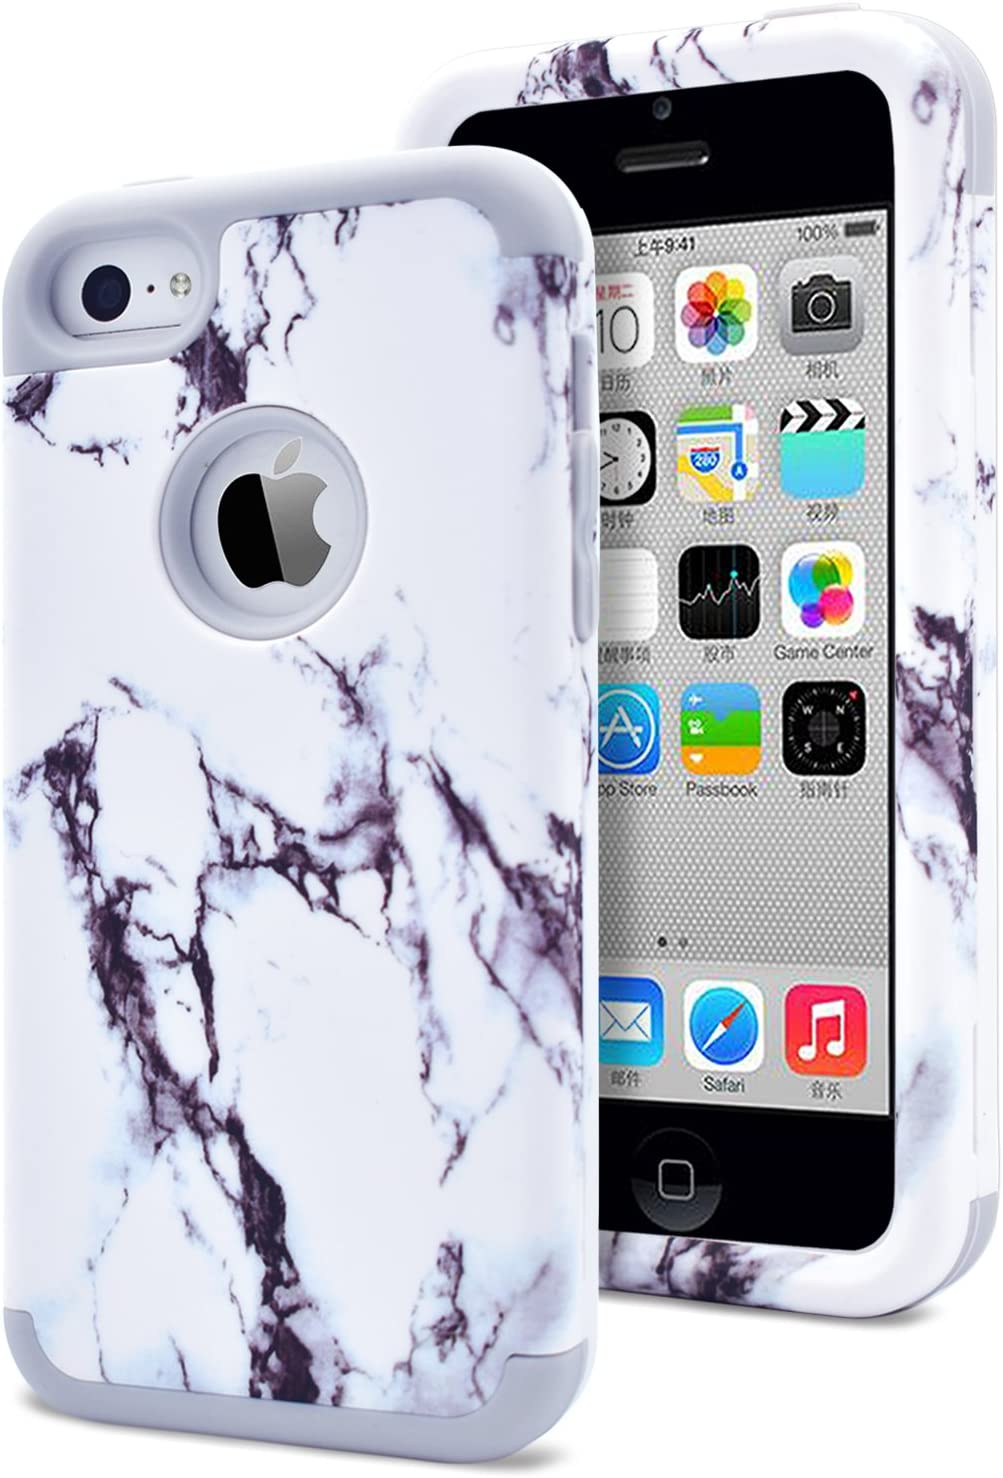 Dailylux Shockproof Case for iPhone 5 / 5C / 5S / SE, PC + Soft Silicone Three Layers Armor Anti-Slip Protective Defensive Hard Back Cover, Marble Grey